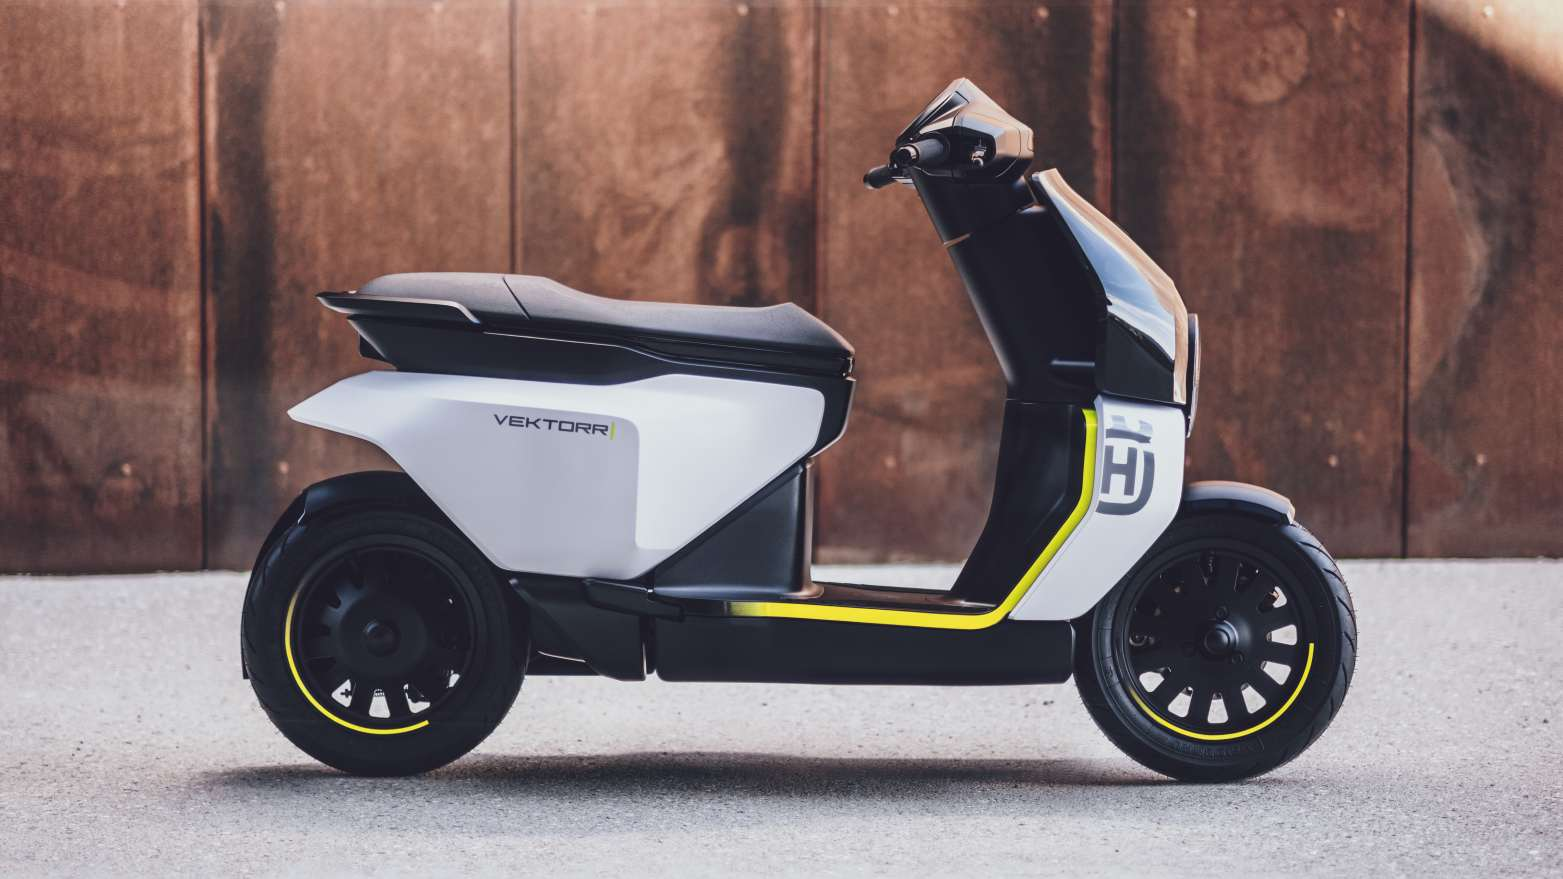 The vector's 12-inch alloy wheels are featured thanks to the single-sided front suspension and swivel arm.  Photo: Husqvarna